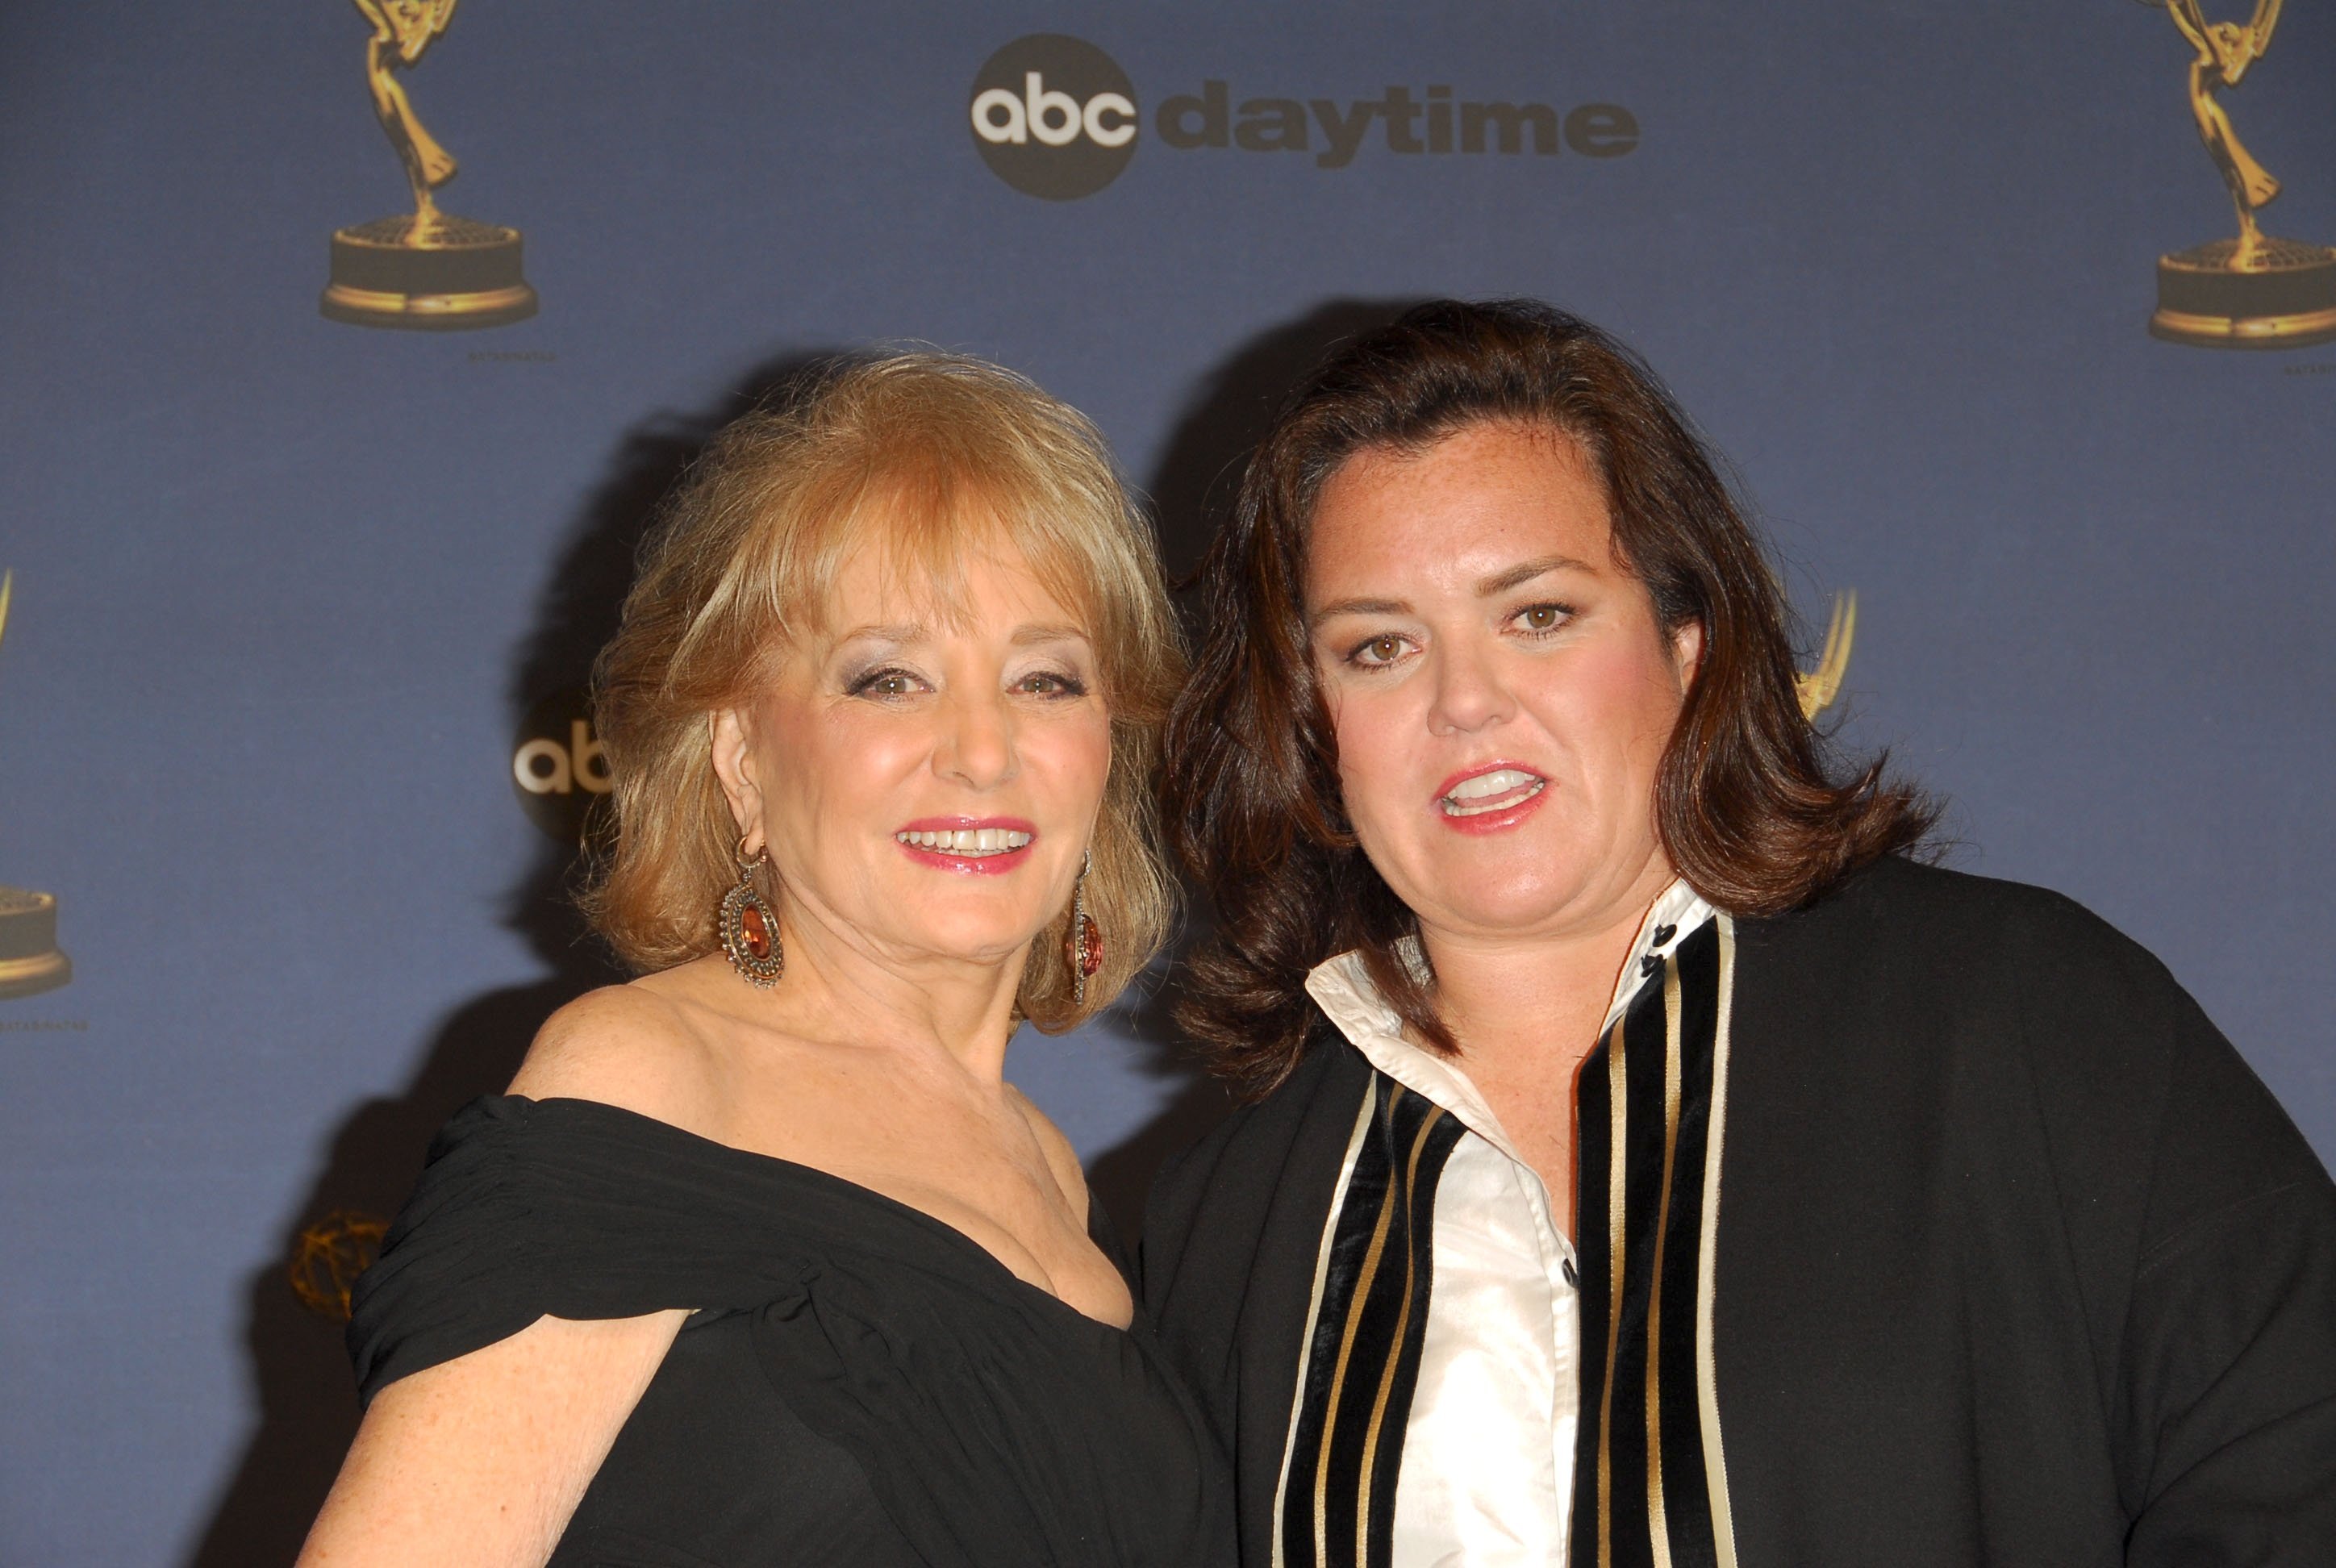 """Rosie O'Donnell on Her Relationship With Barbara Walters: 'I Think She's a Wonderful Woman"""""""